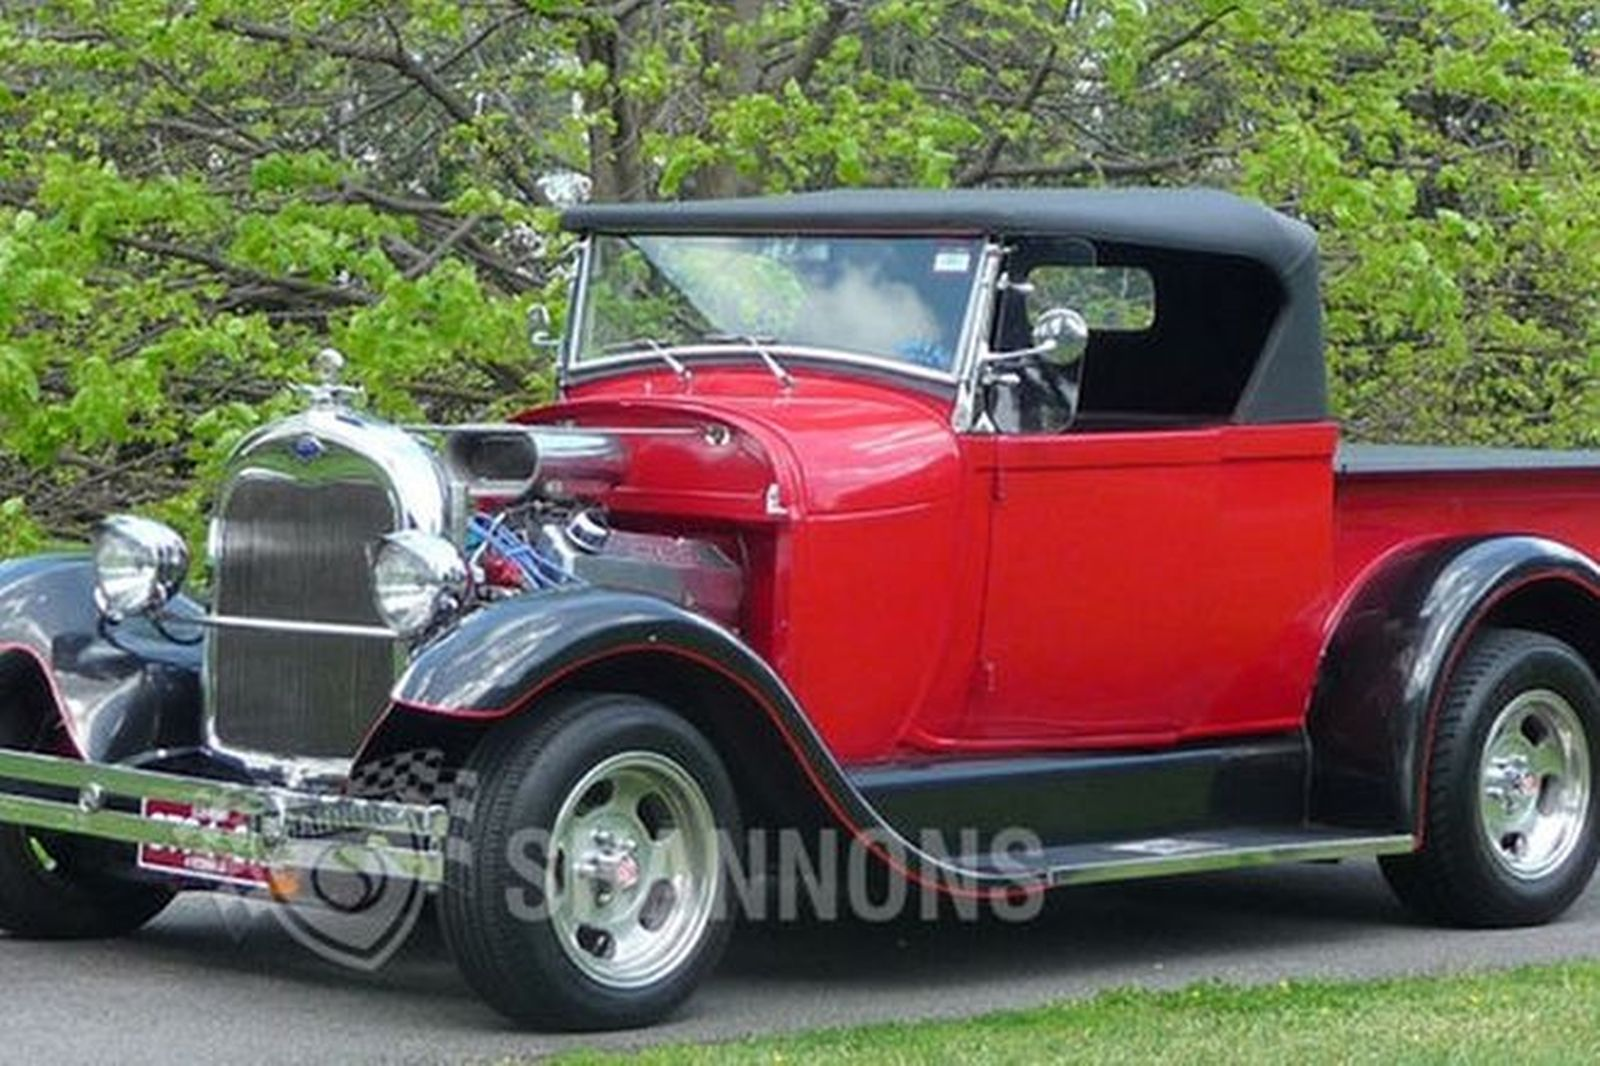 Ford Model A 'Hot Rod' Roadster Utility (RHD)